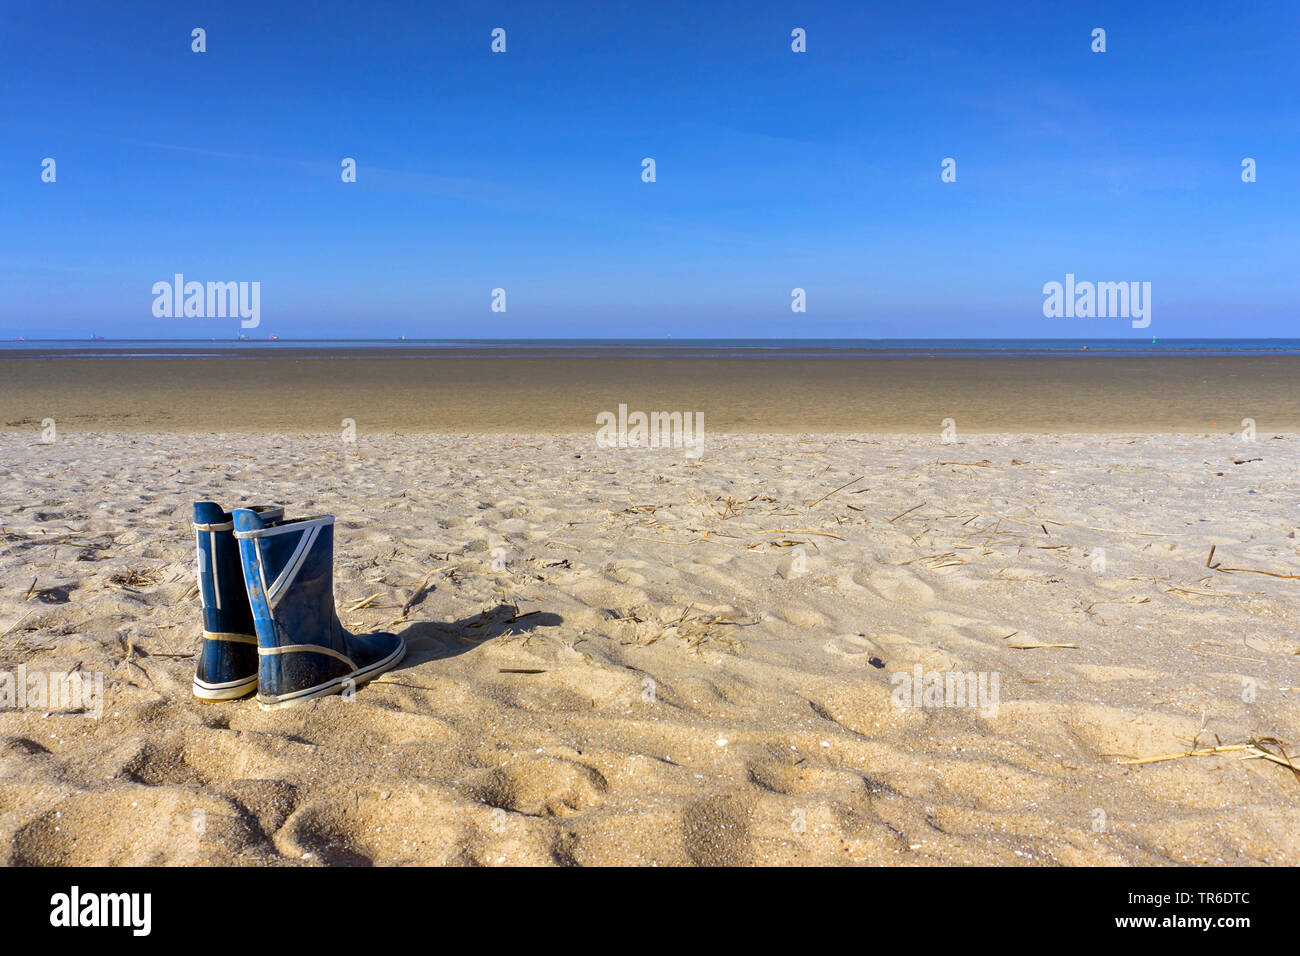 rubber boot at the wadden sea, Germany, Schleswig-Holstein, Schleswig-Holstein Wadden Sea National Park Stock Photo